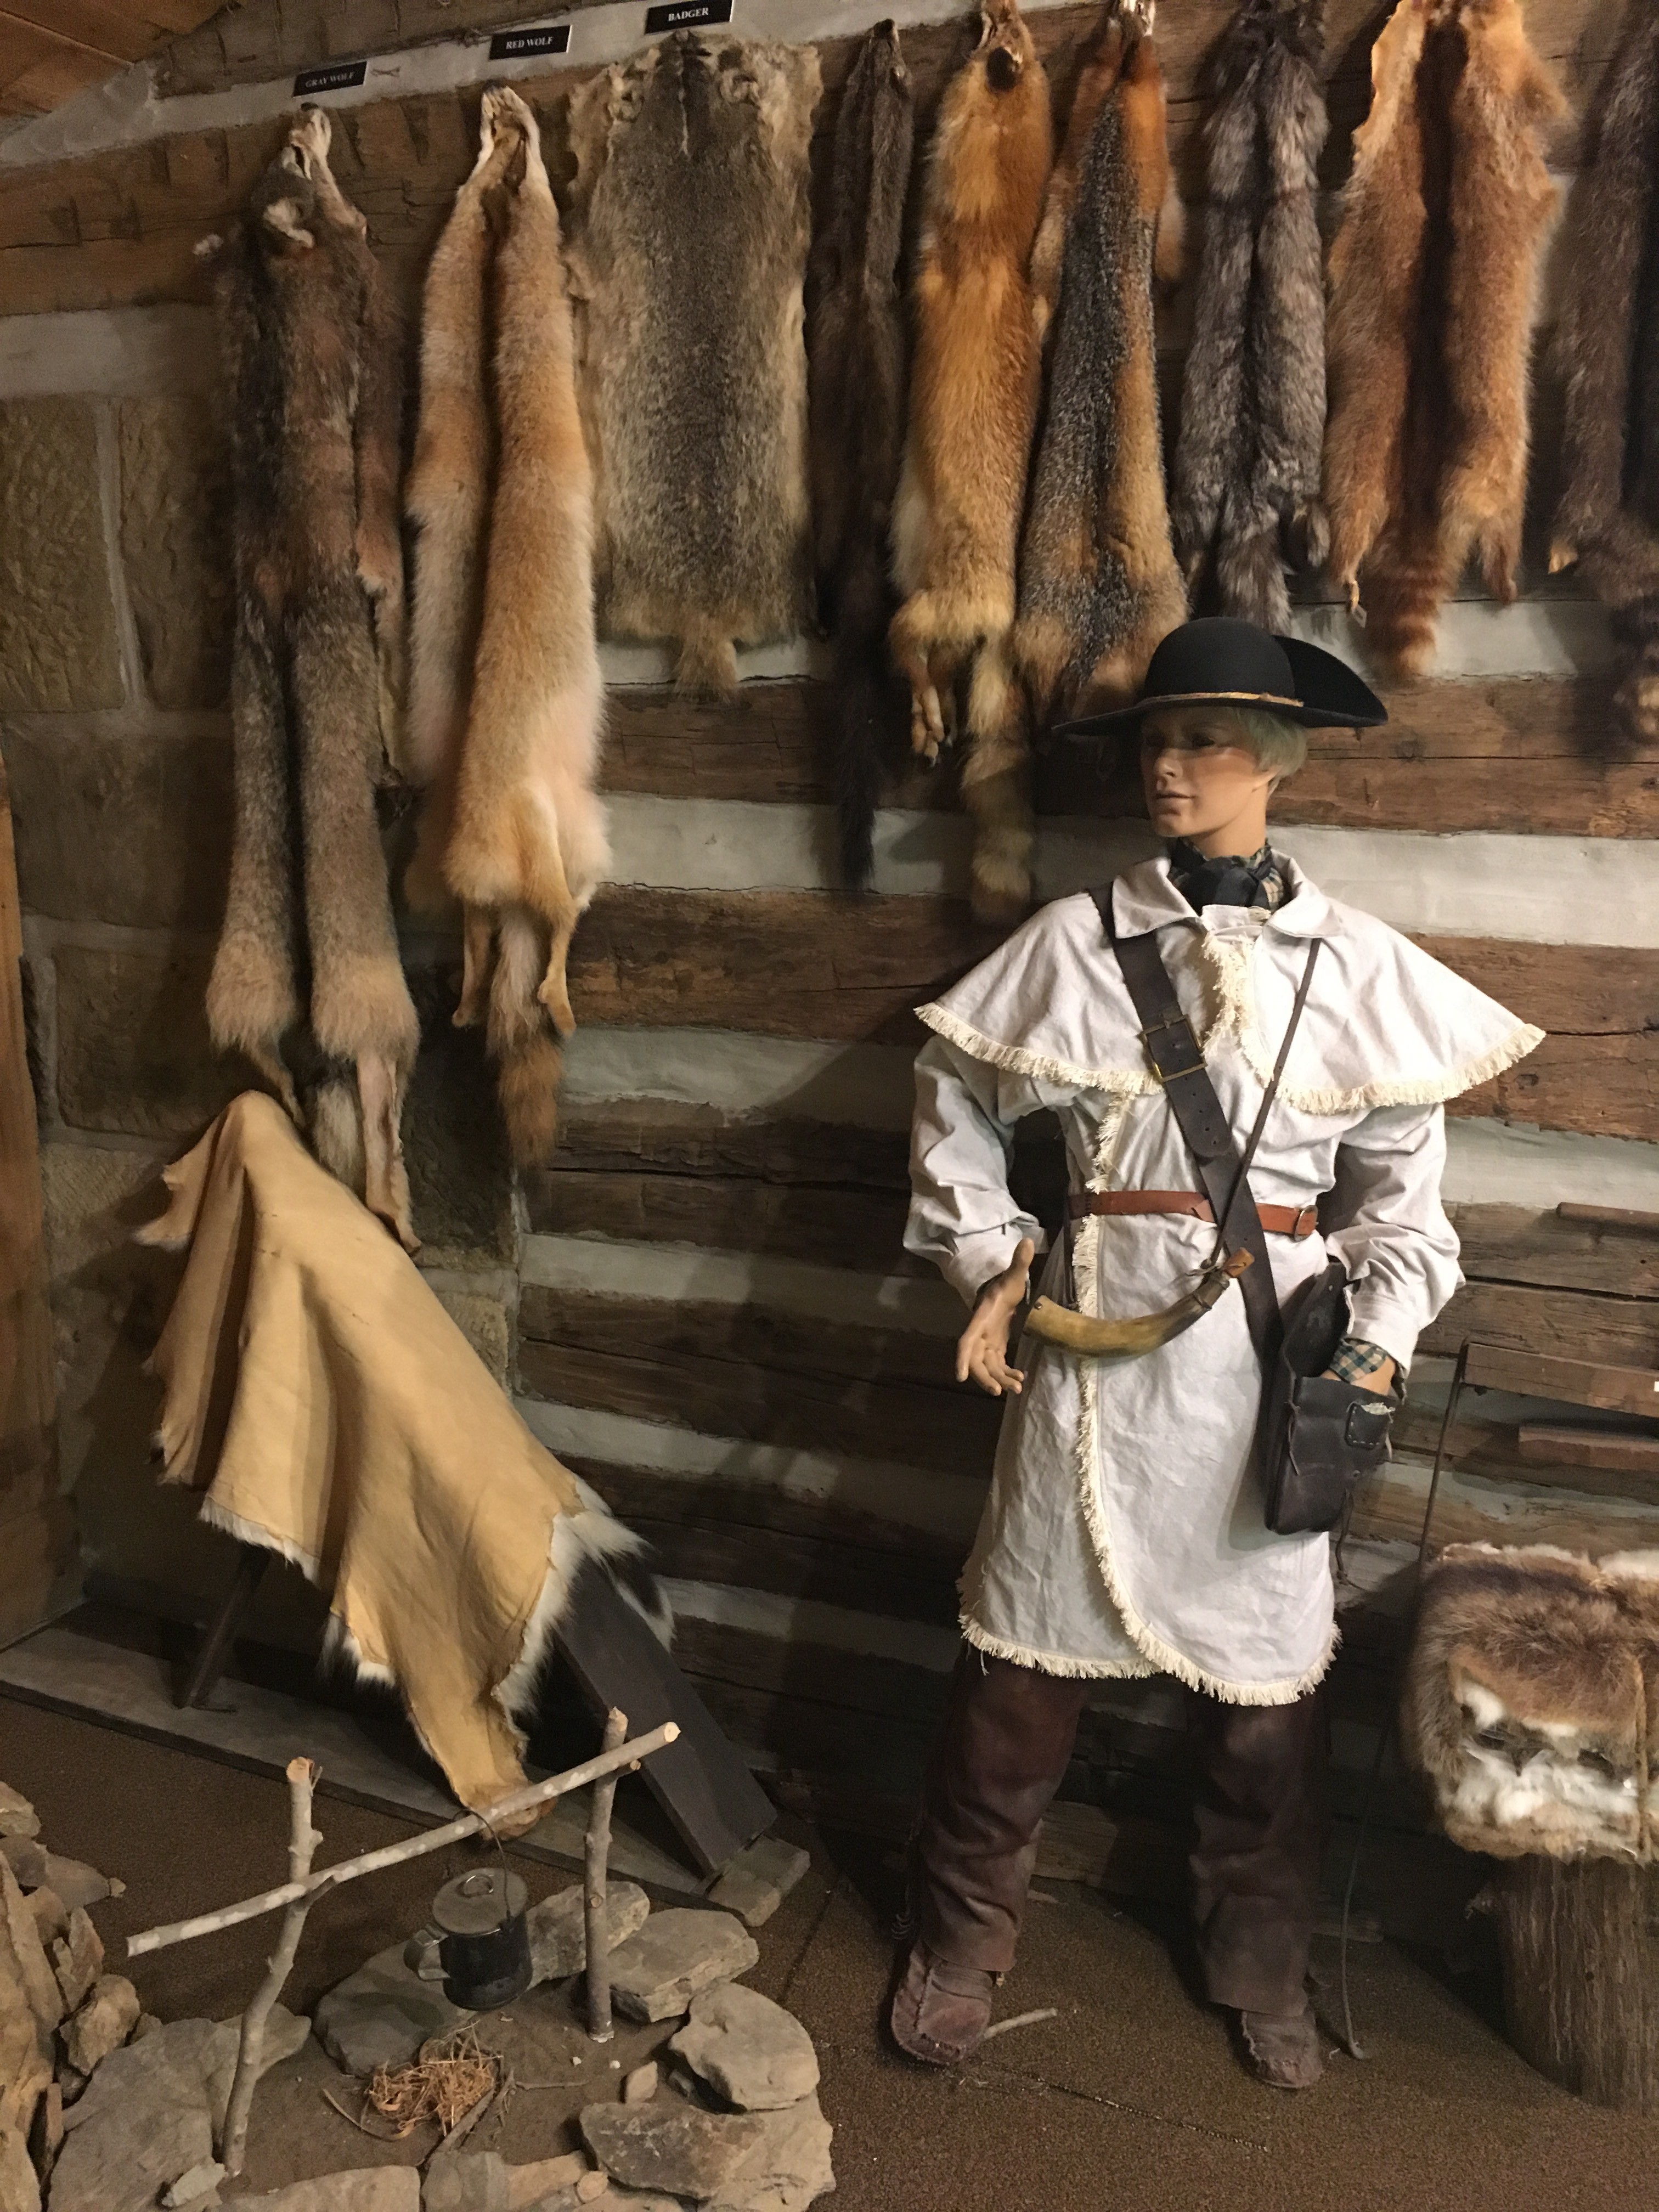 Many French and English fur traders traveled around North America to sell metal tools and other items to Native Americans in exchange for fur pelts.